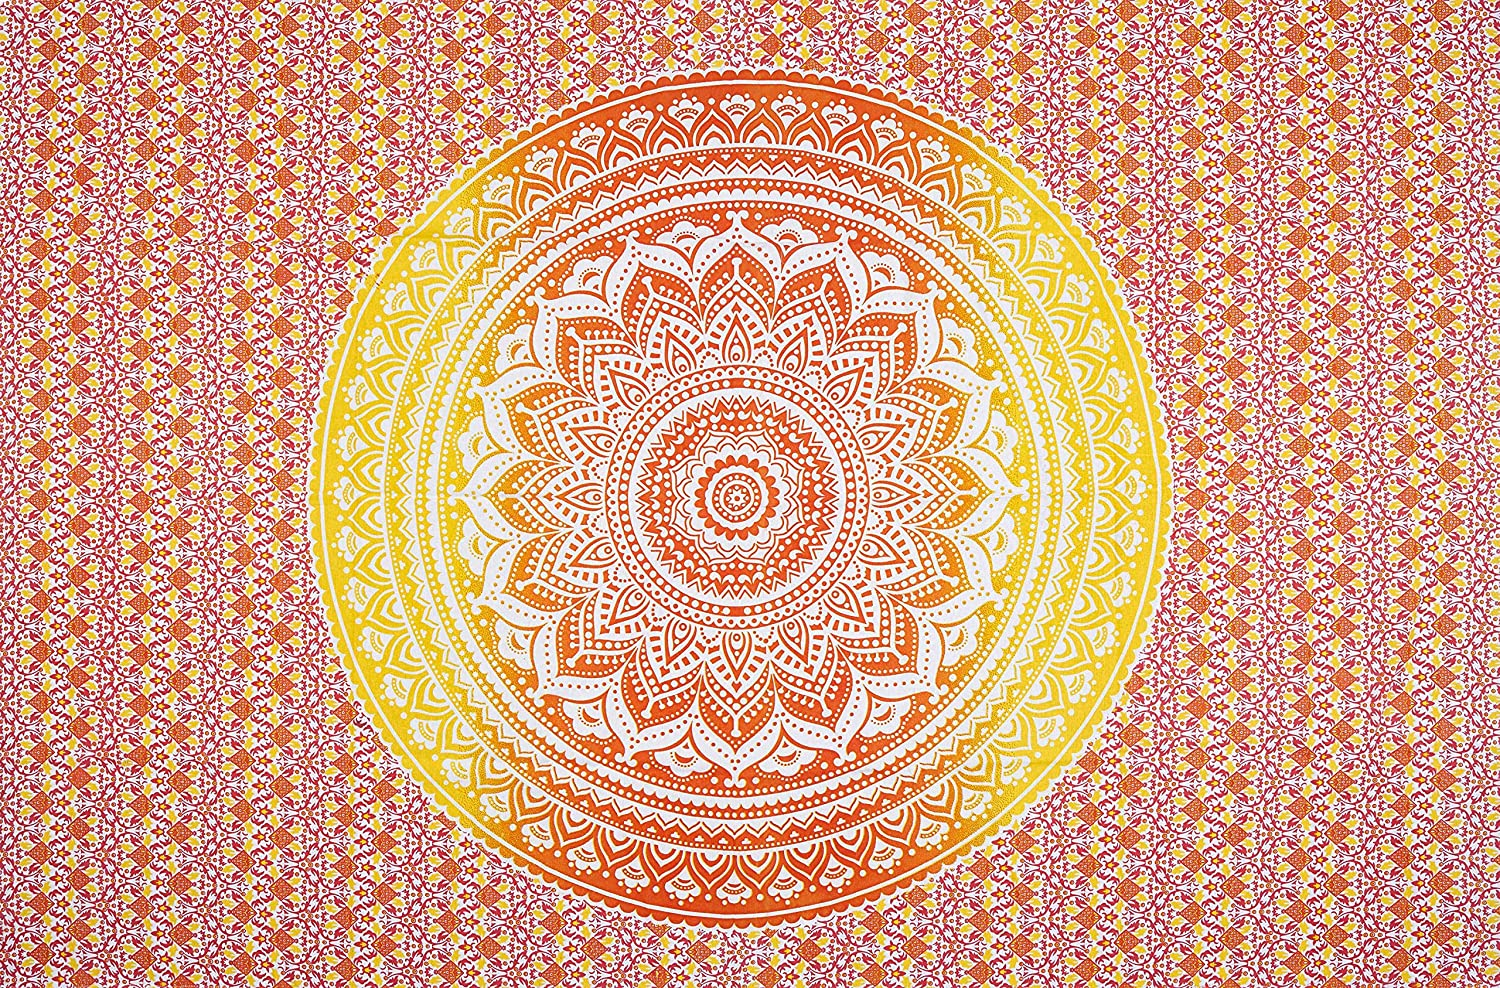 Baga Imports Indian Hippie Bohemian Orange Ombre Mandala Star Wall Hanging Tapestry Twin Size Bedding (82 x 54 inches) (Twin, Orange Yellow Star)